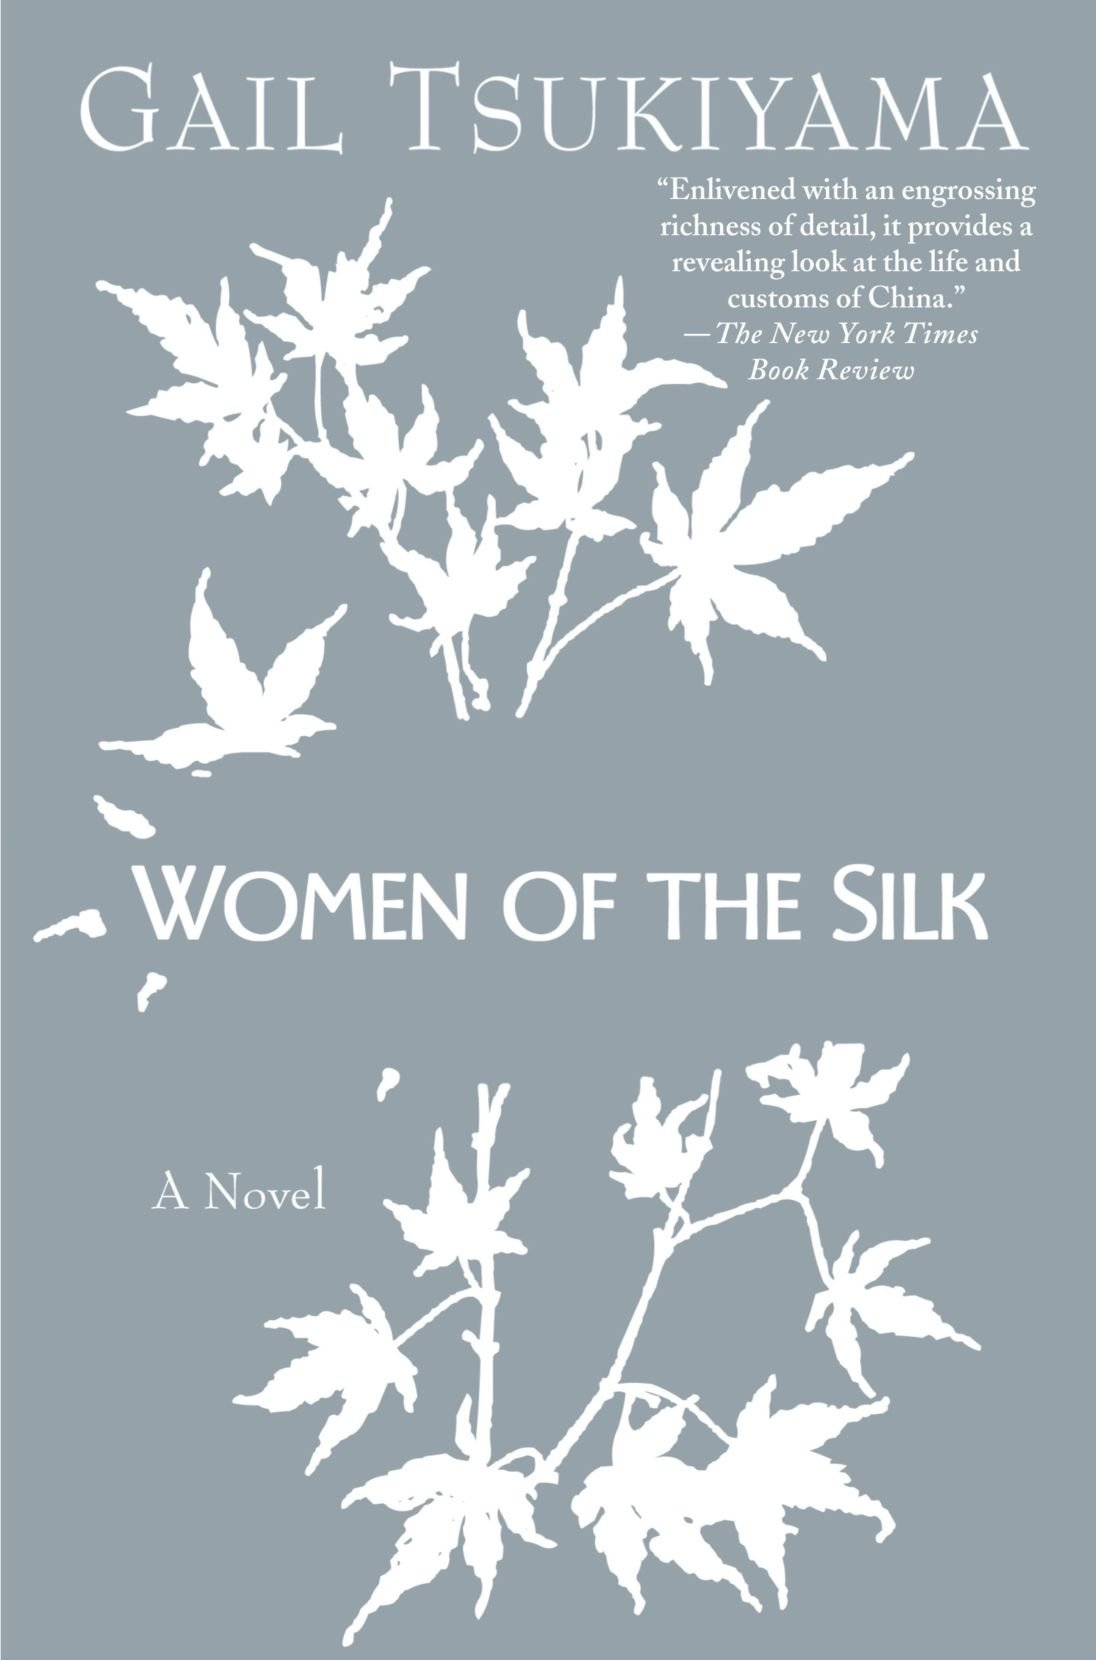 Women of the Silk by Gail Tsukiyama